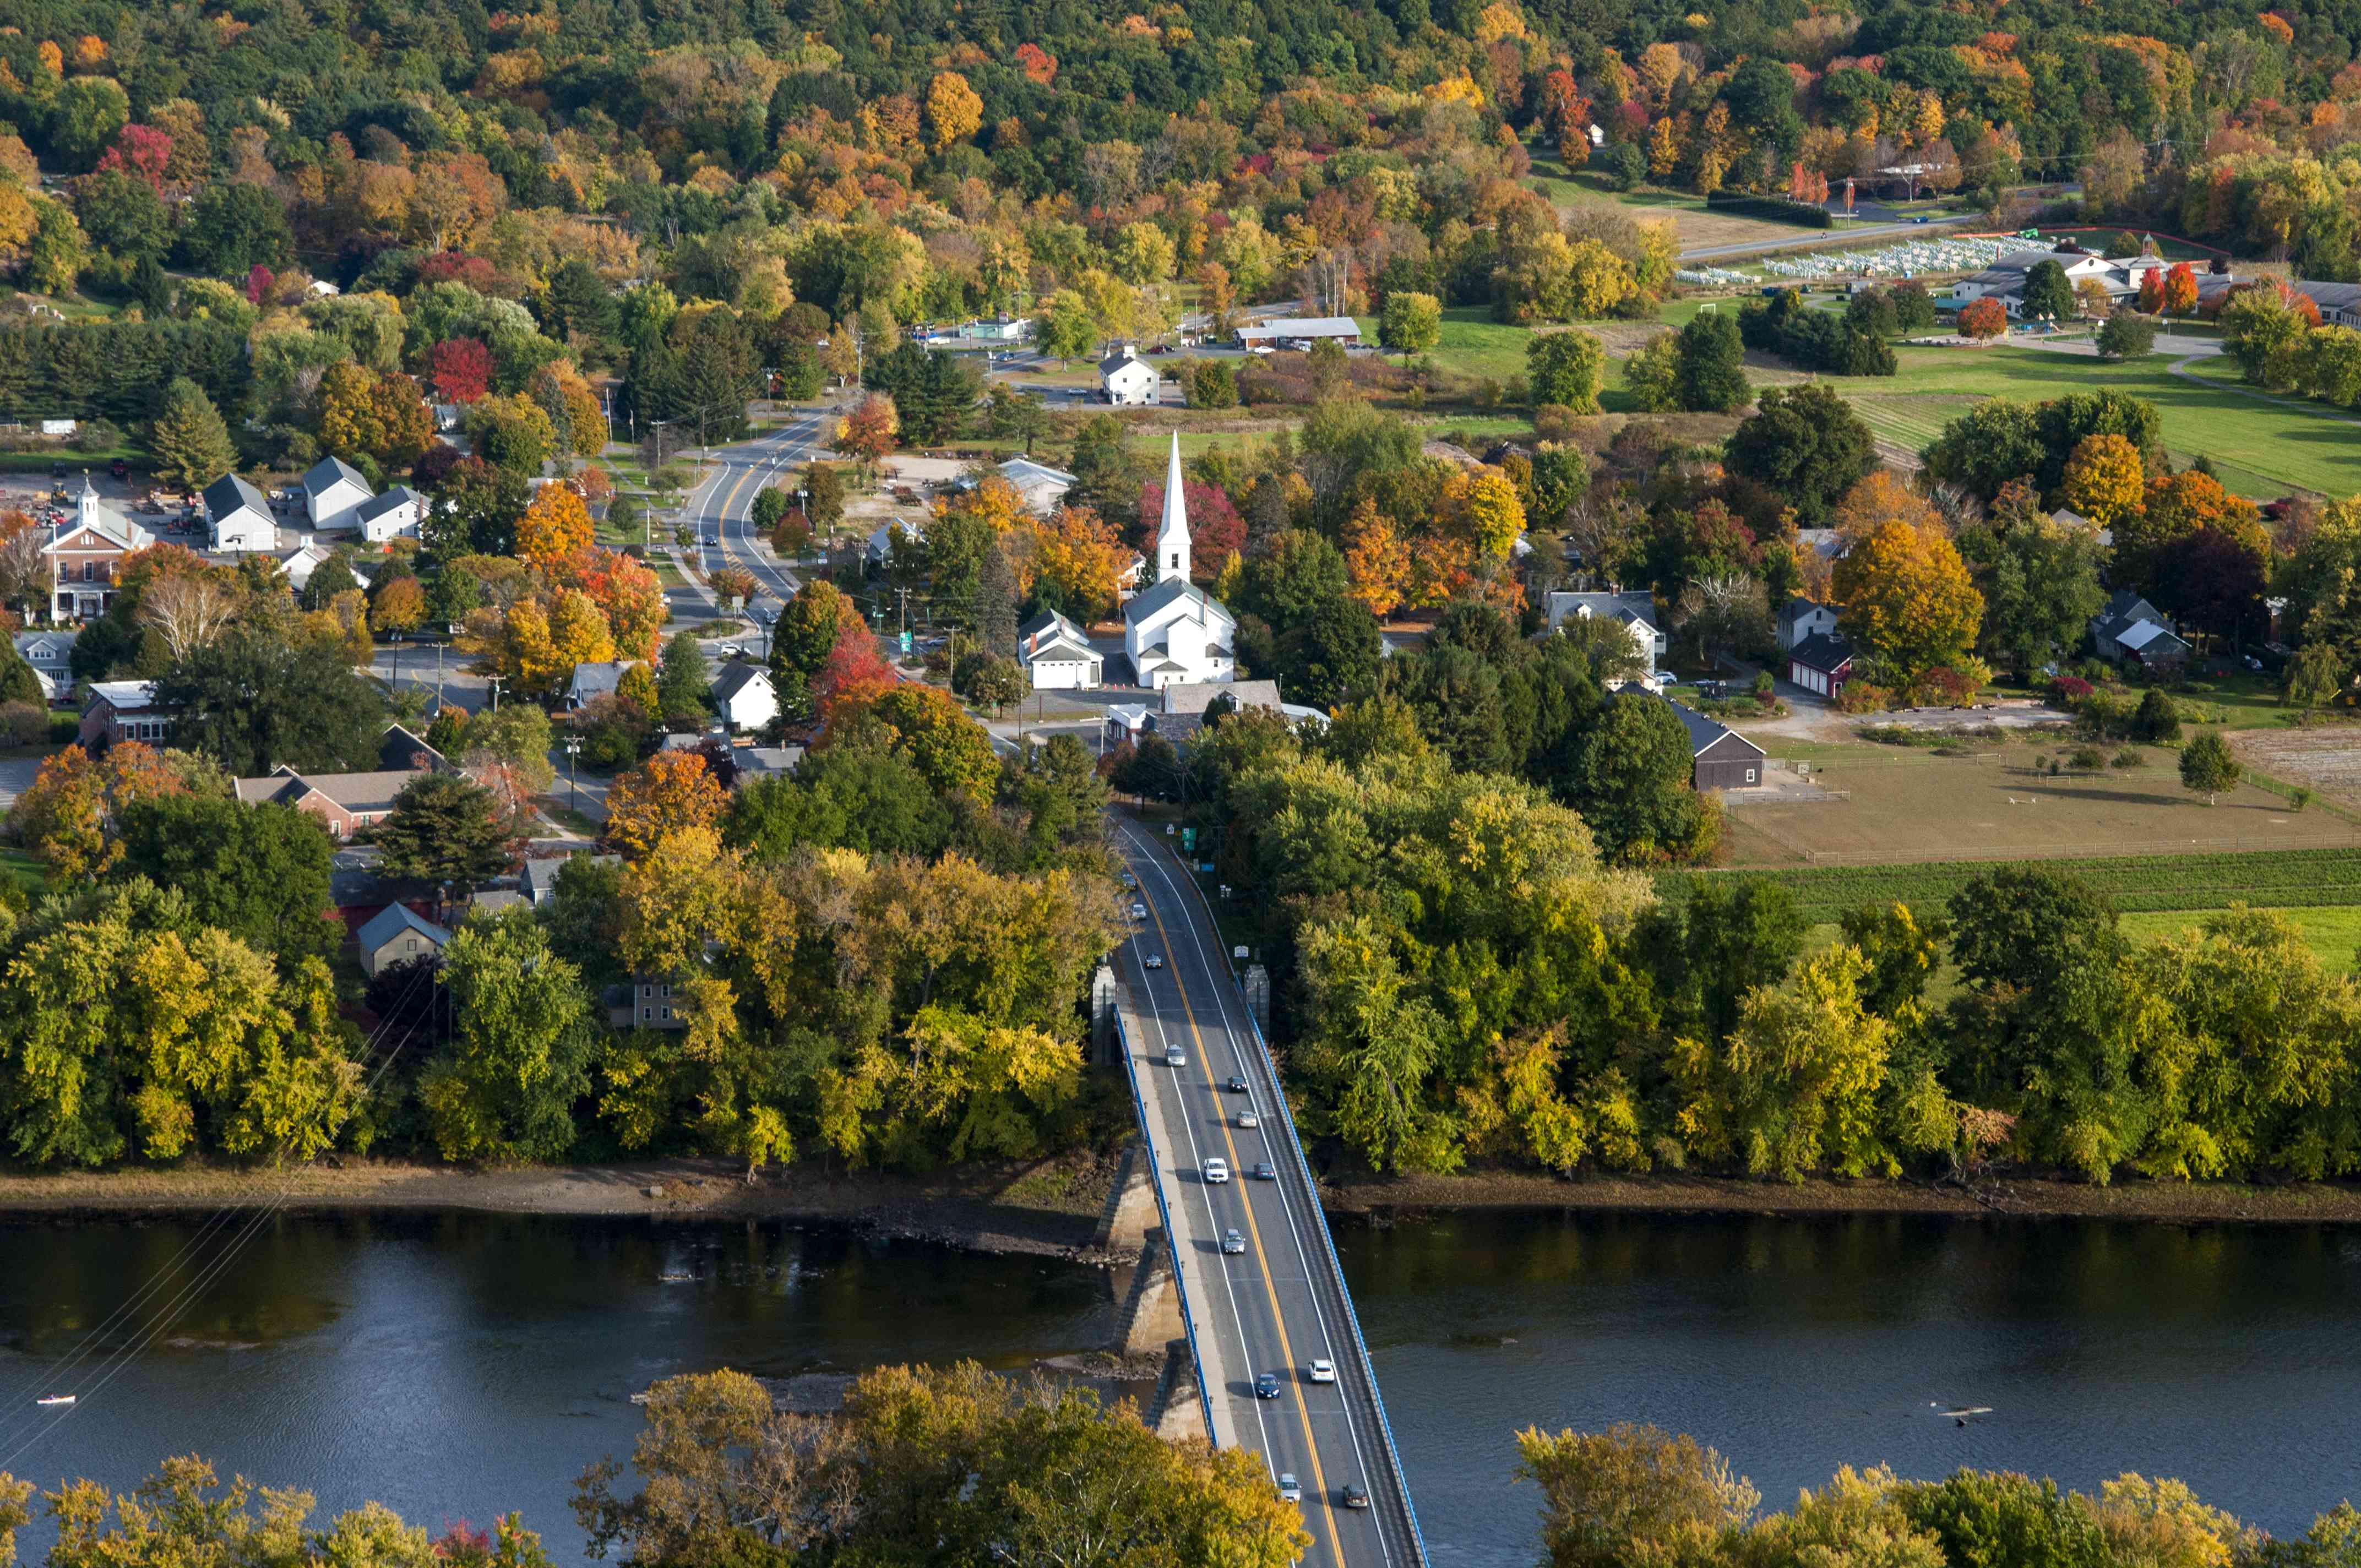 view of small massachusetts town and highway going over a river with some orange and red trees